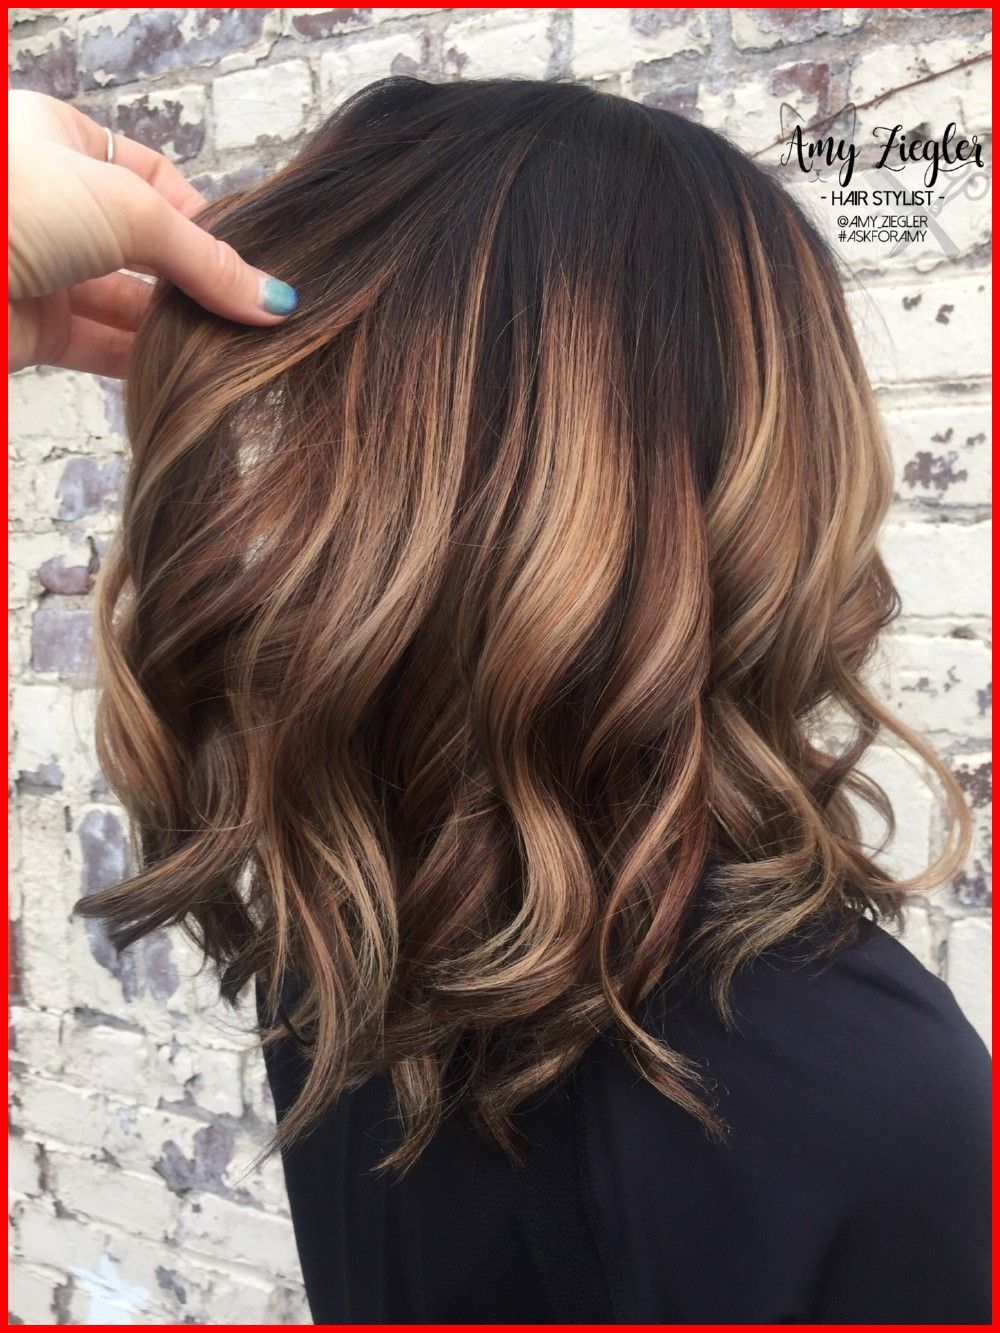 Image Result For Hair Color For Over 50s Ideas Hair Styles Brown Hair Balayage Medium Hair Styles